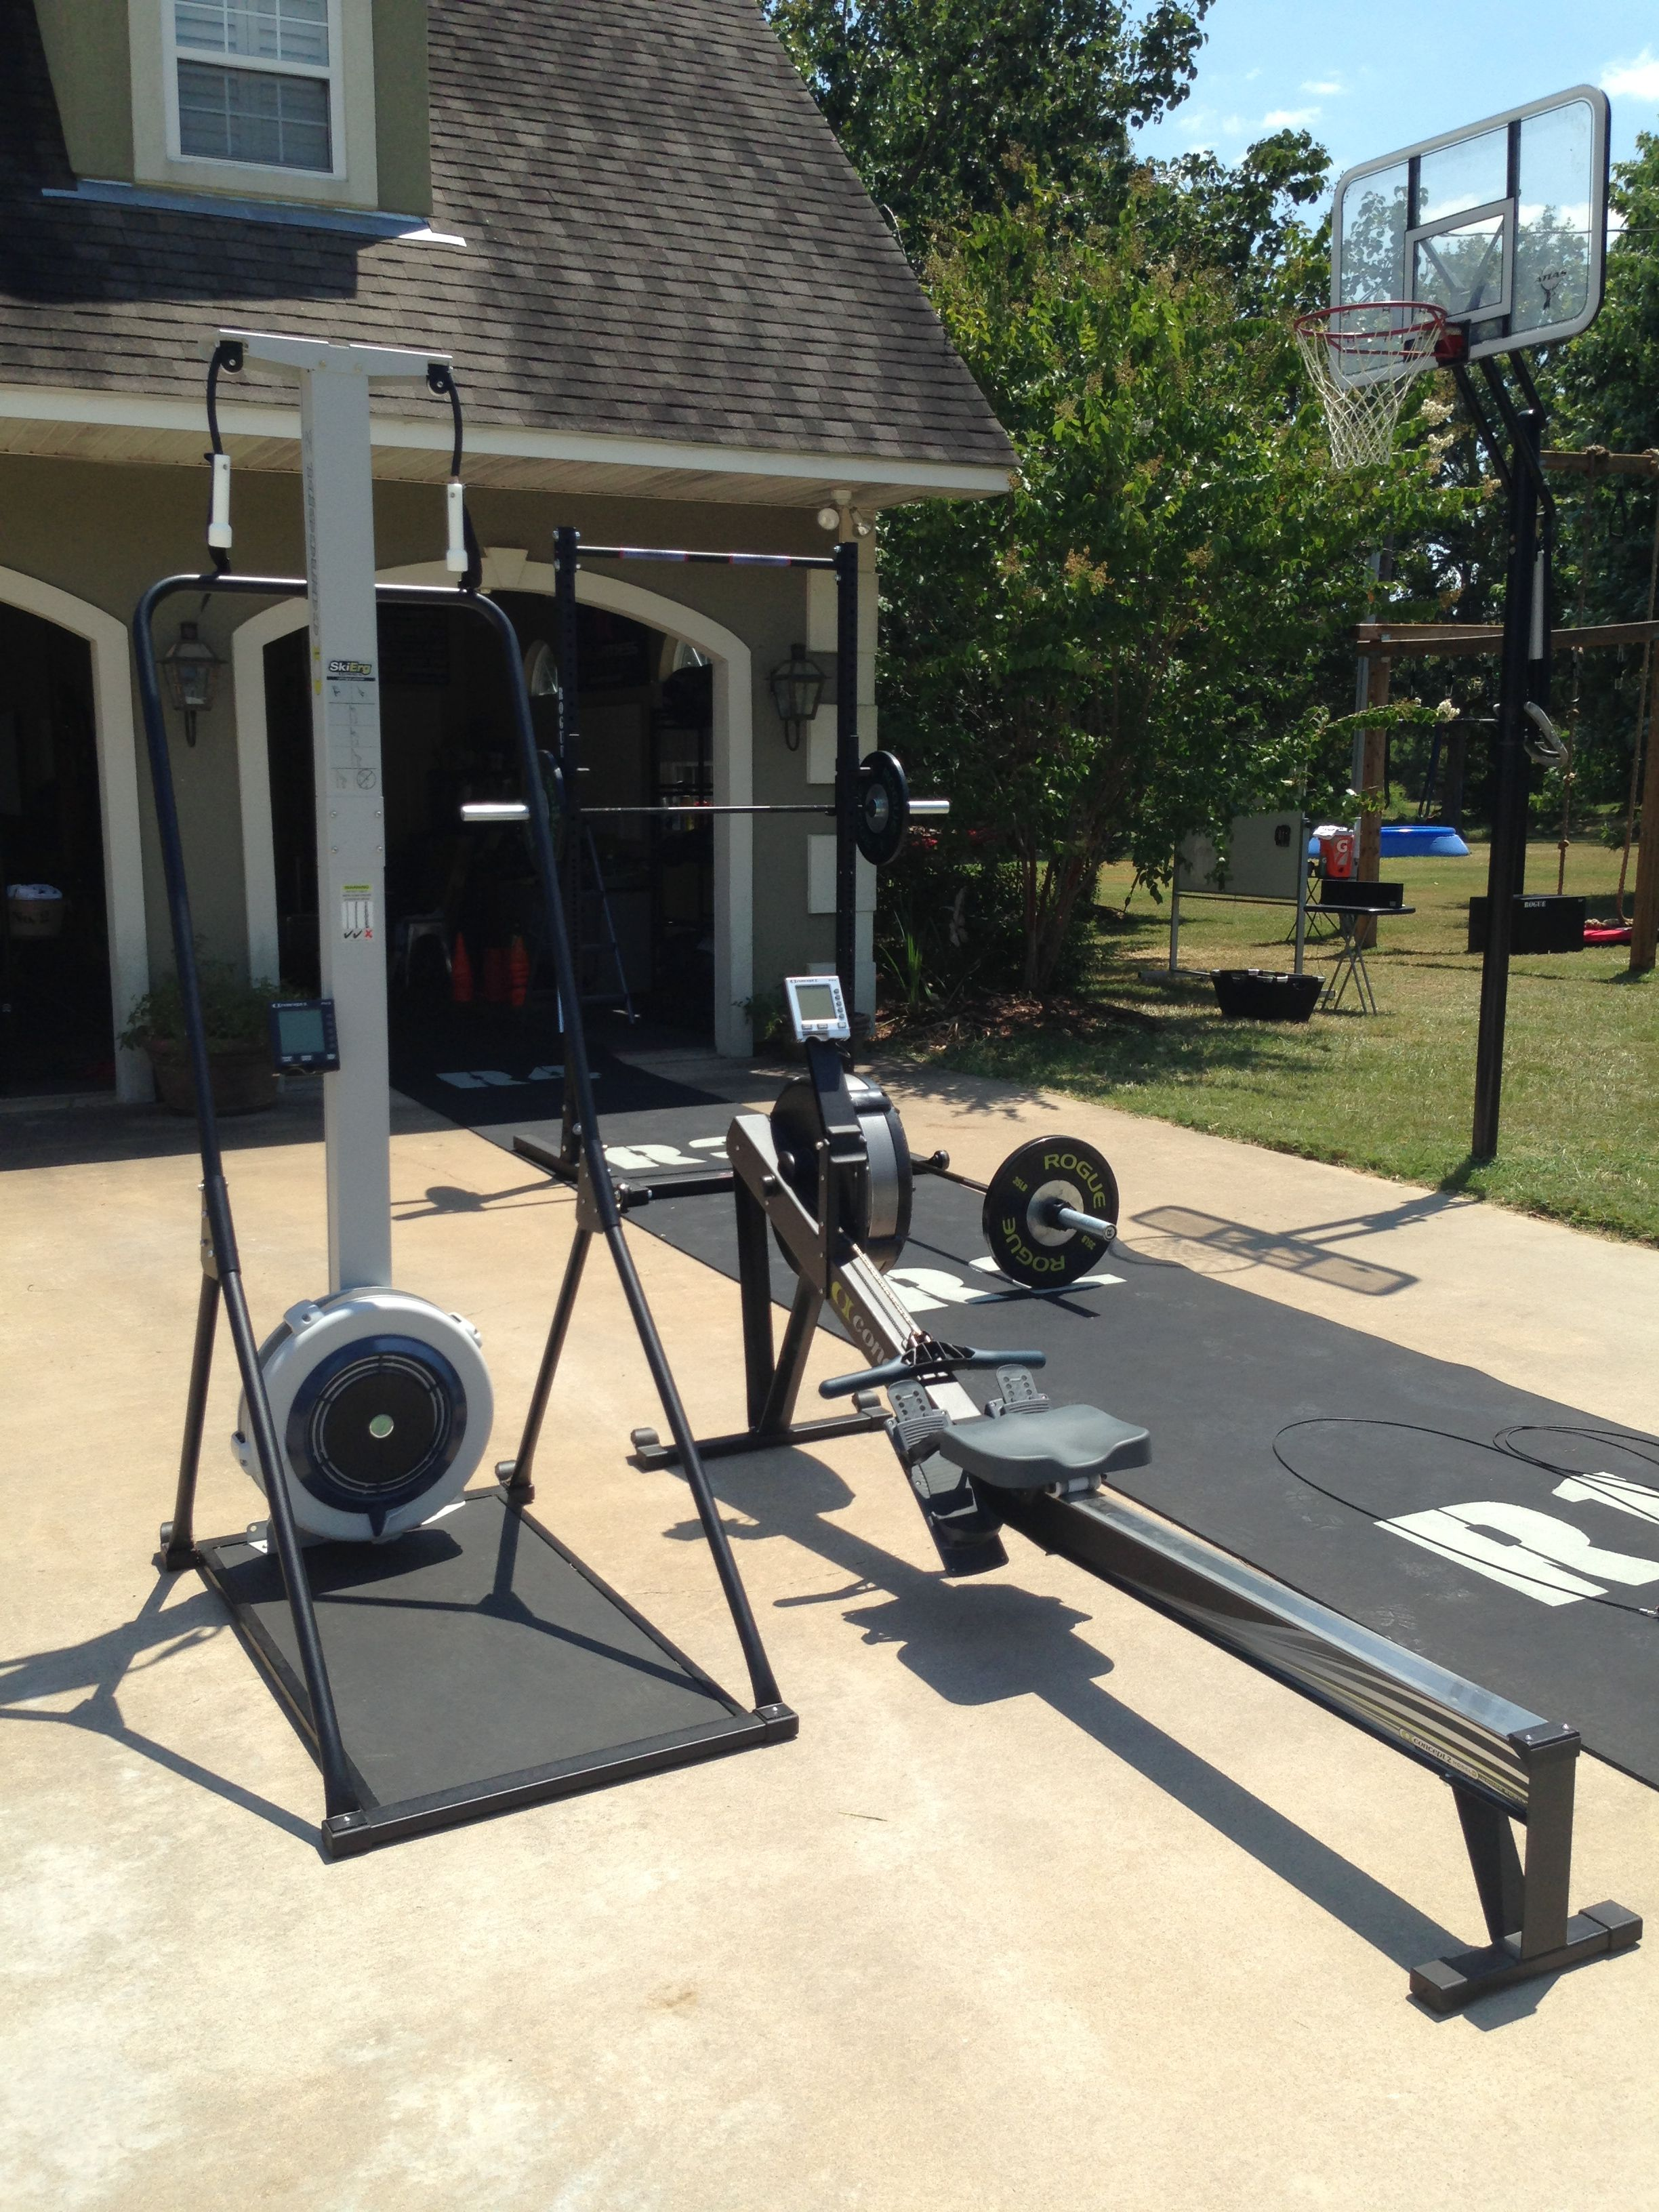 Garage Gym Warrior Skierg And Rower B22fit Gym Gym Setup Garage Gym